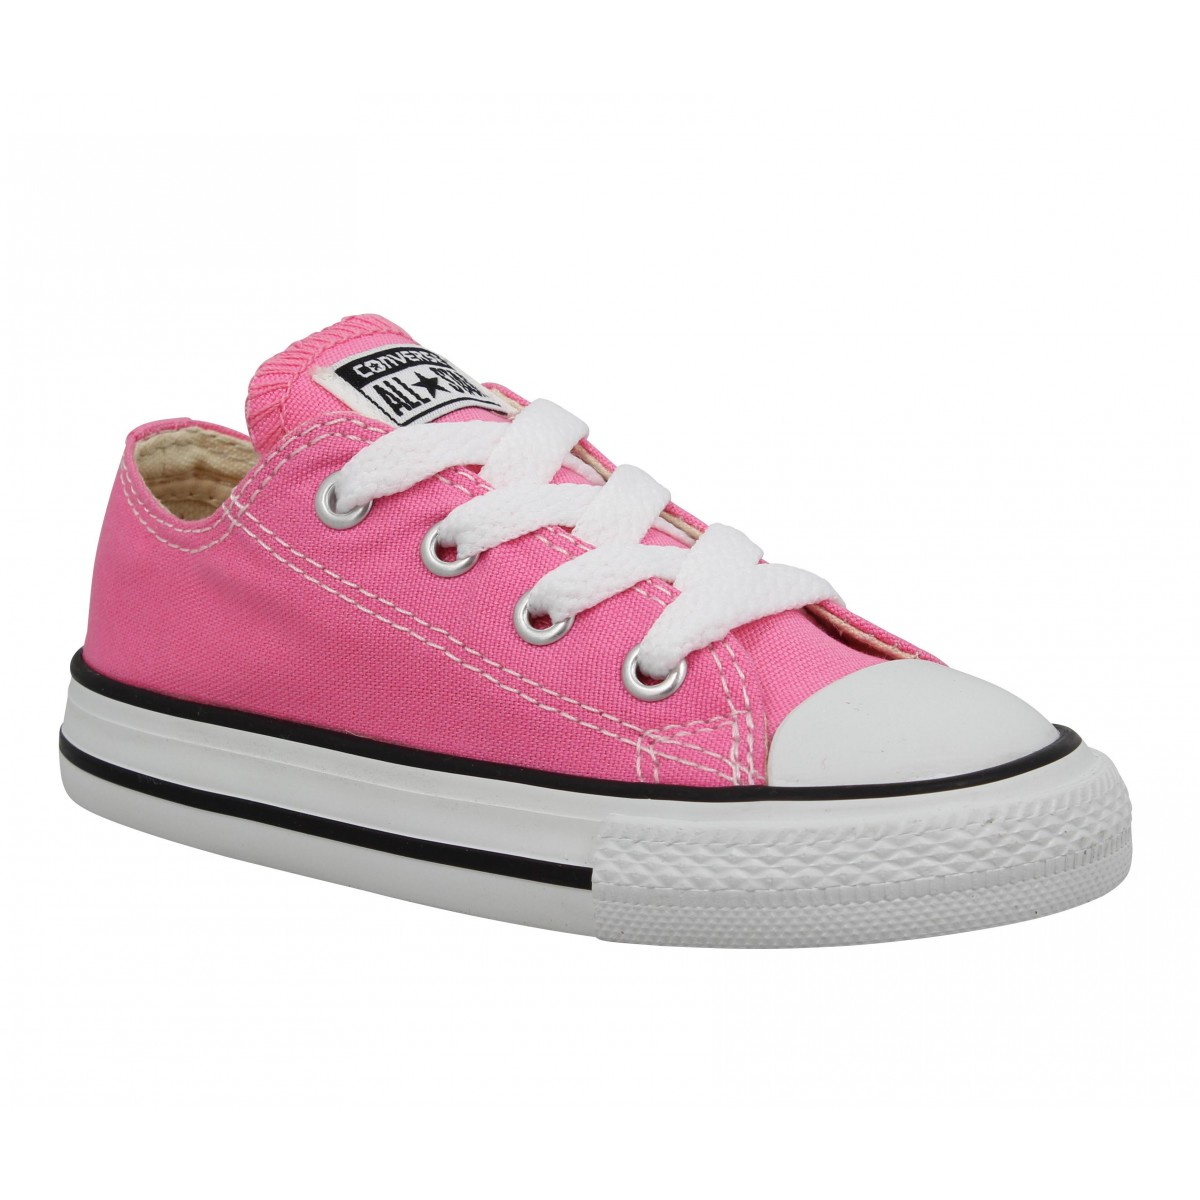 Baskets CONVERSE Chuck Taylor All Star toile Enfant Pink